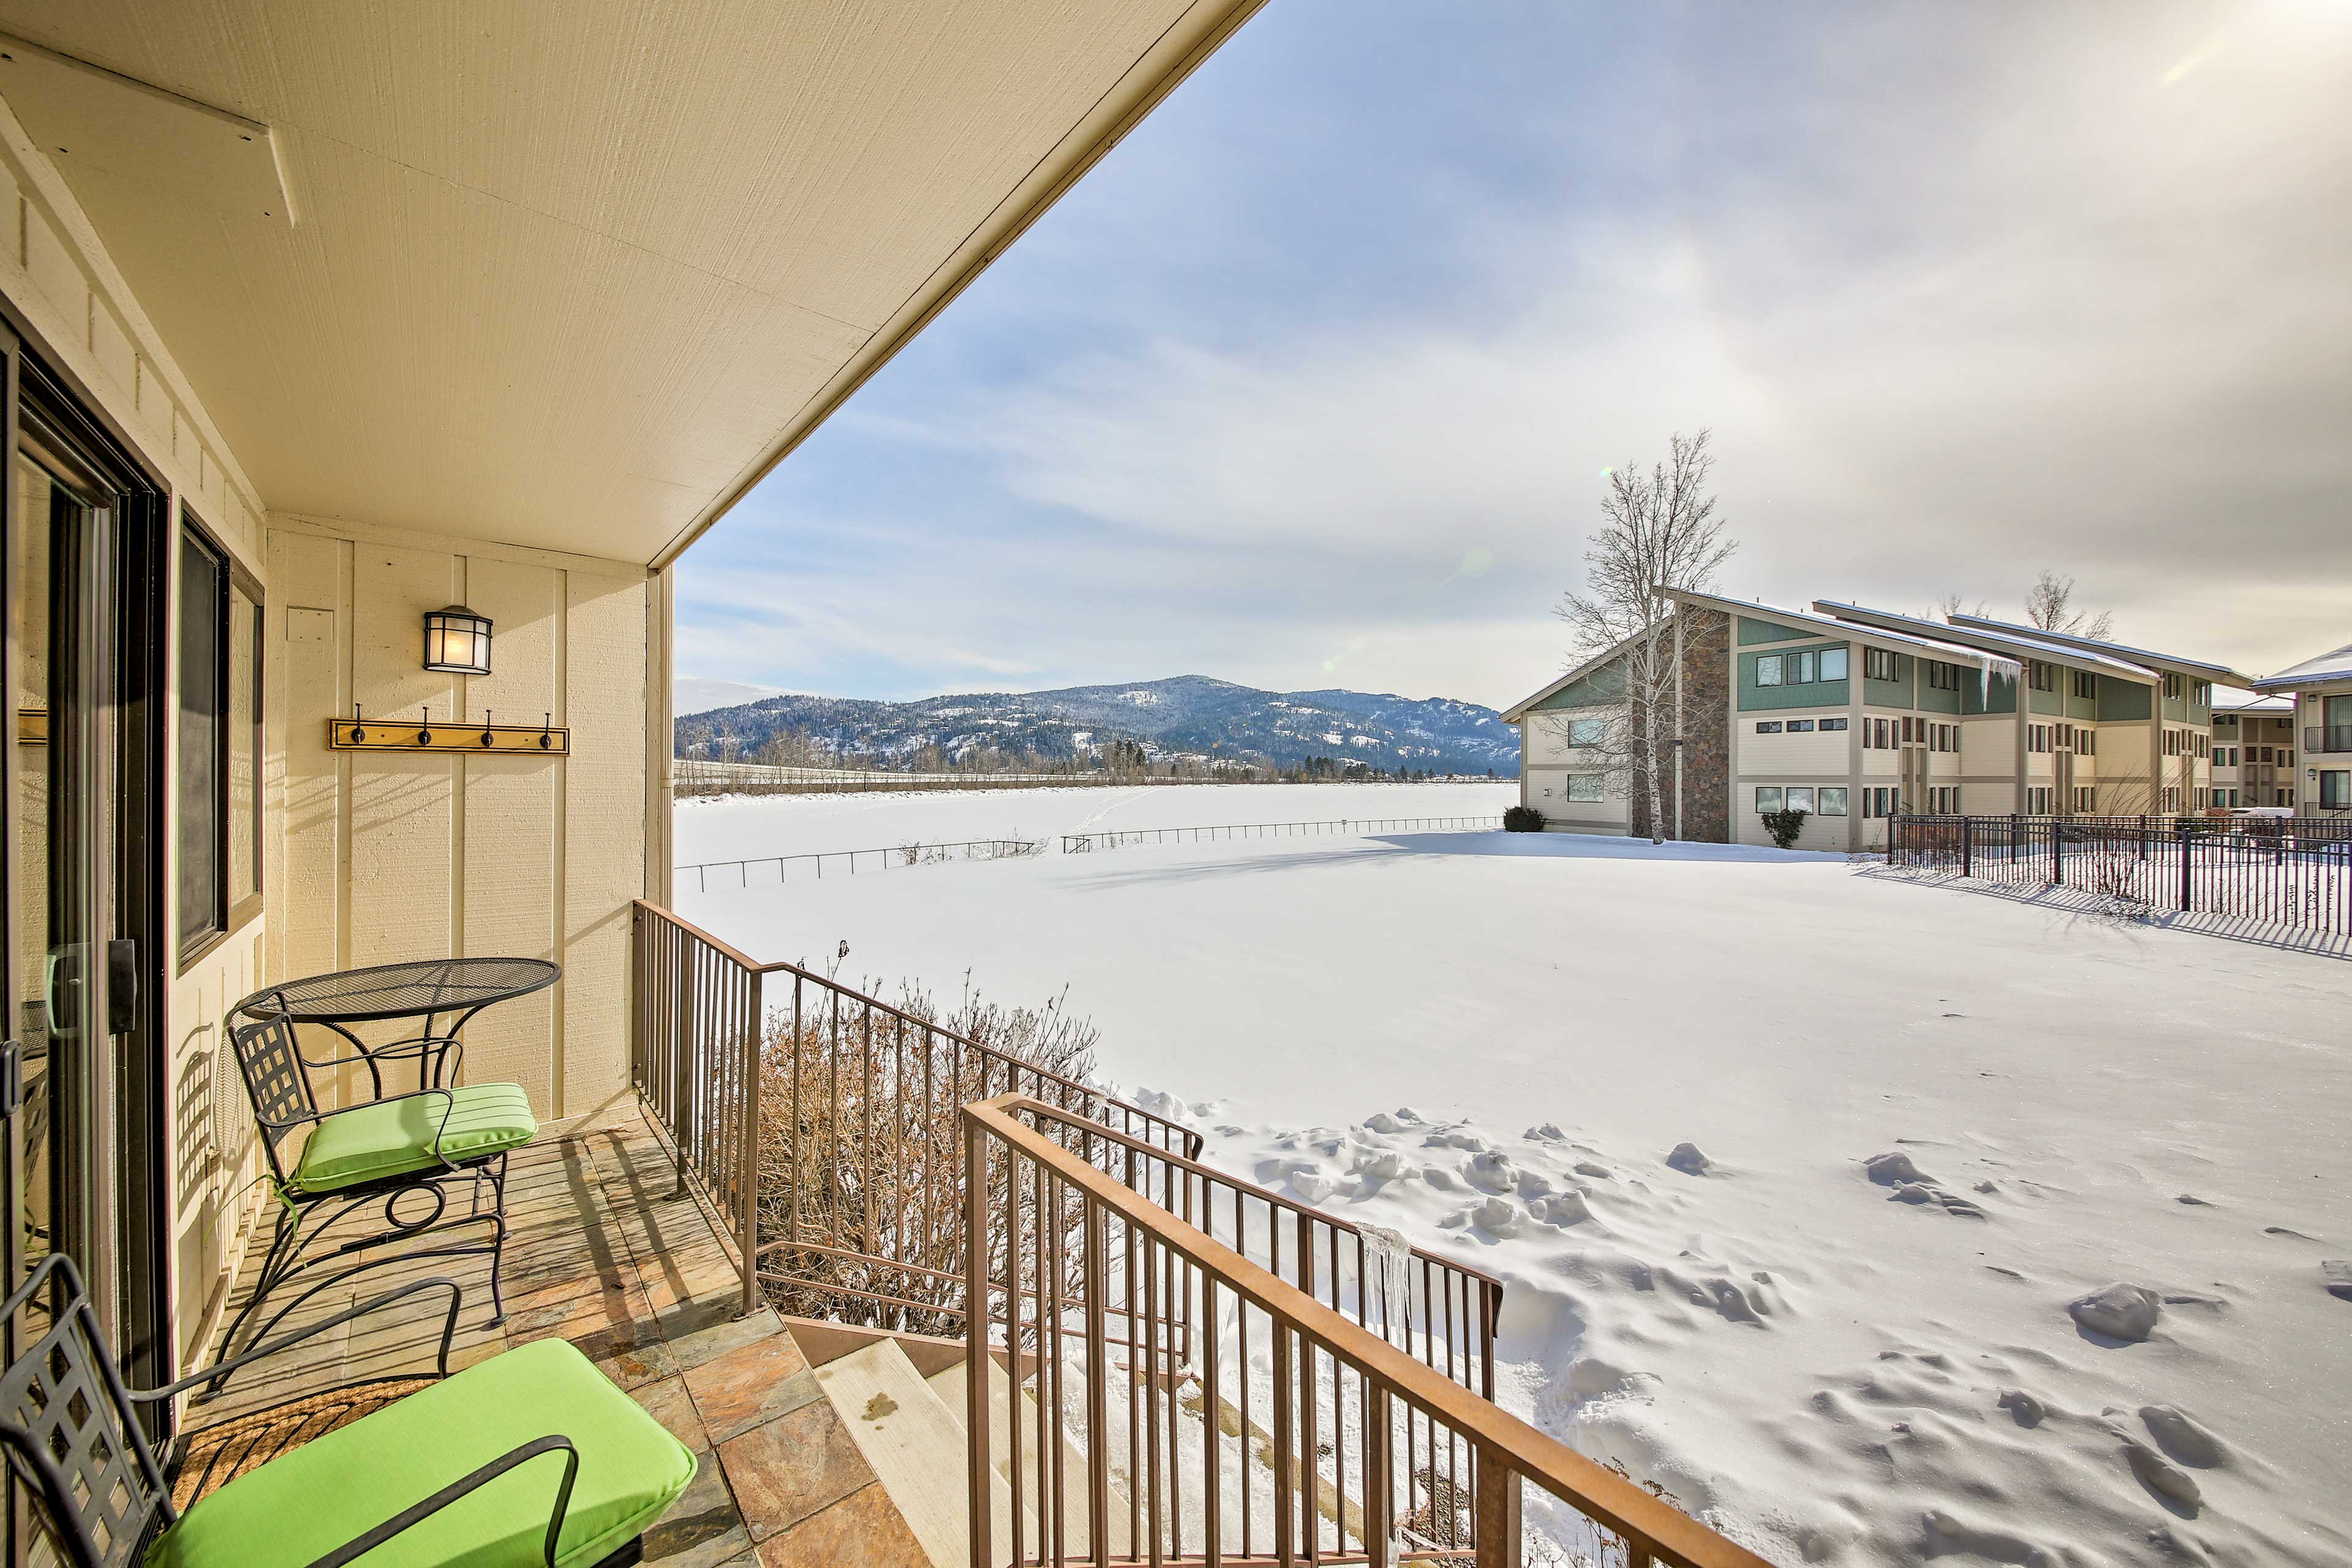 The condo provides a porch with outdoor seating and mountain views.